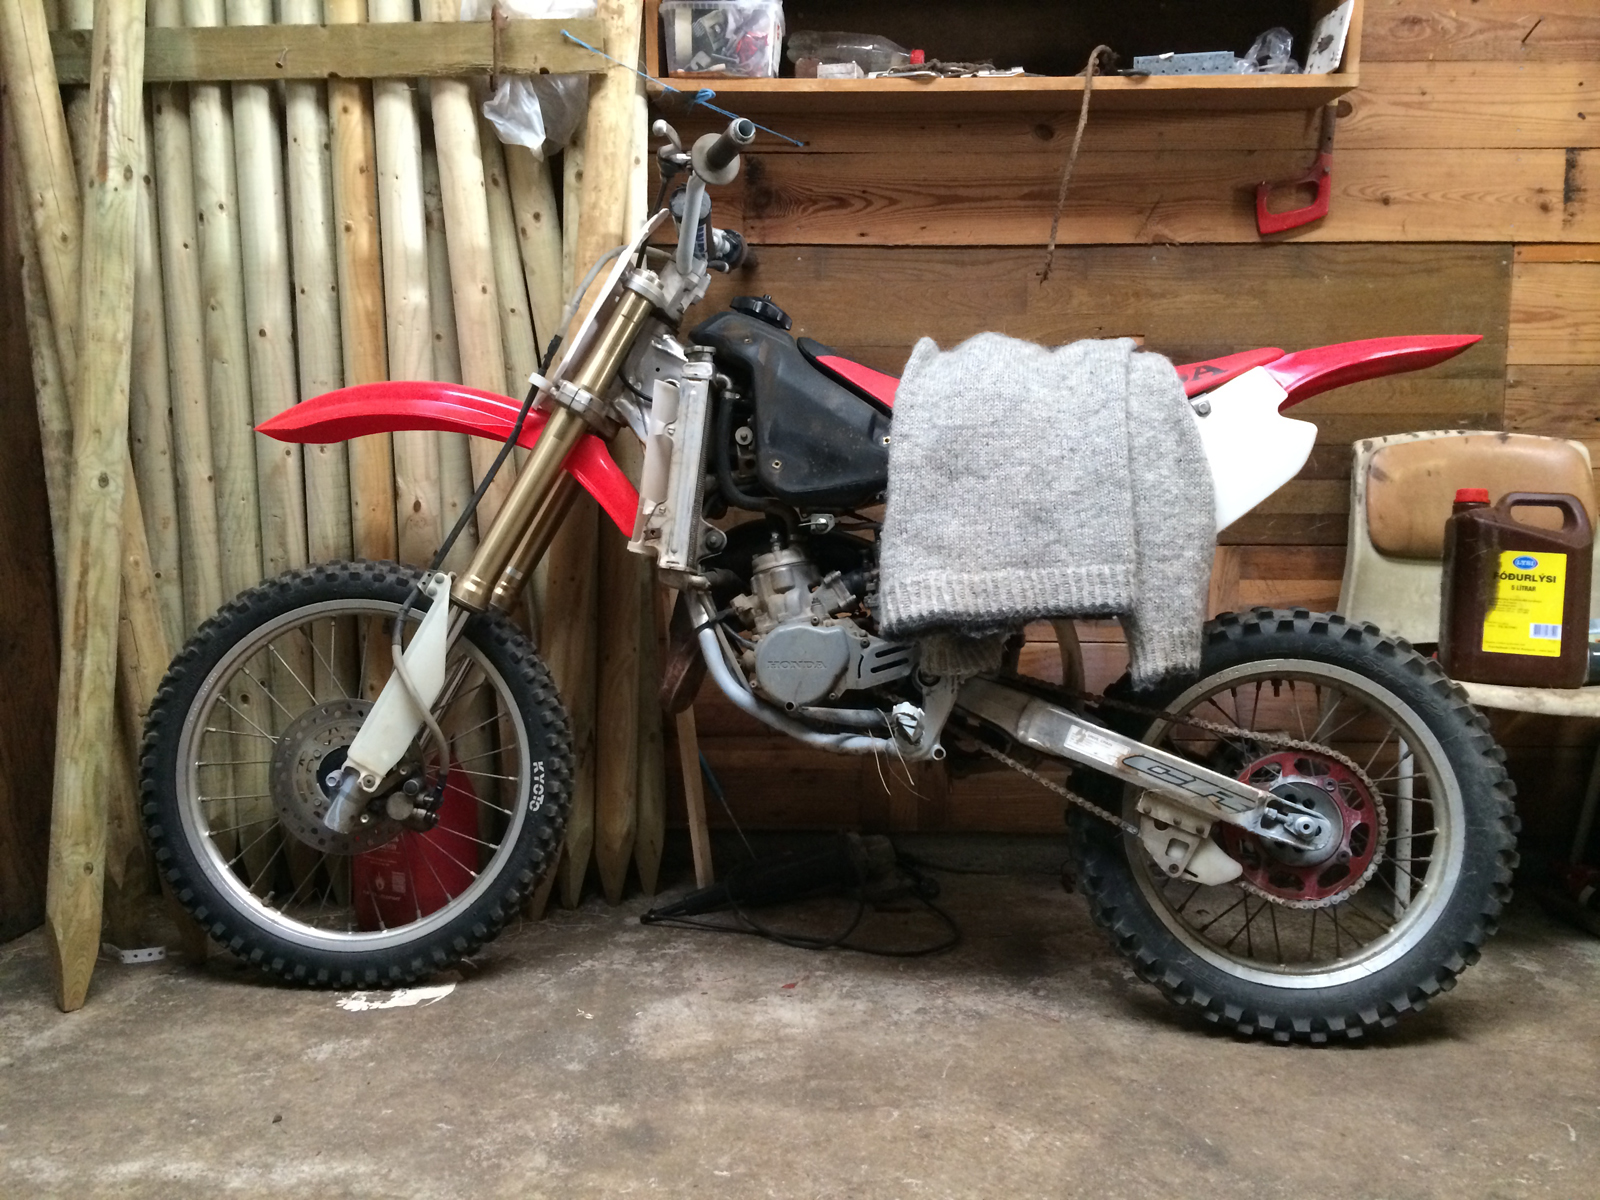 A motocross motorcycle, a sweater on the seat, leaning on a wall with staves.